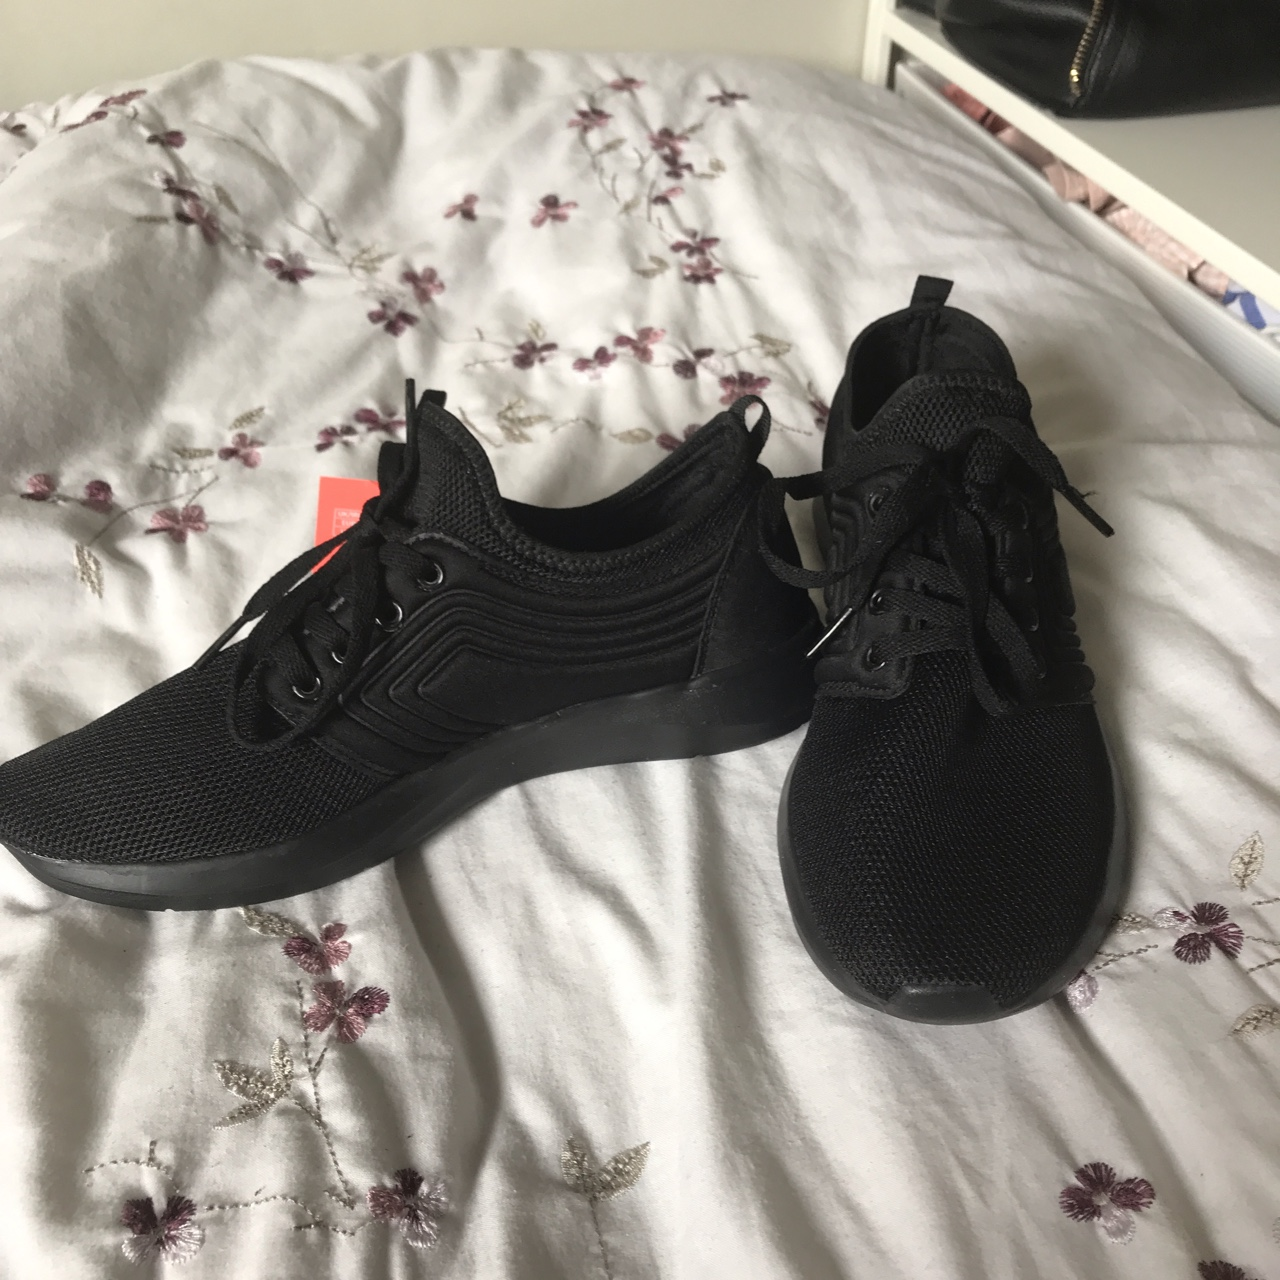 Black memory foam workout trainers from